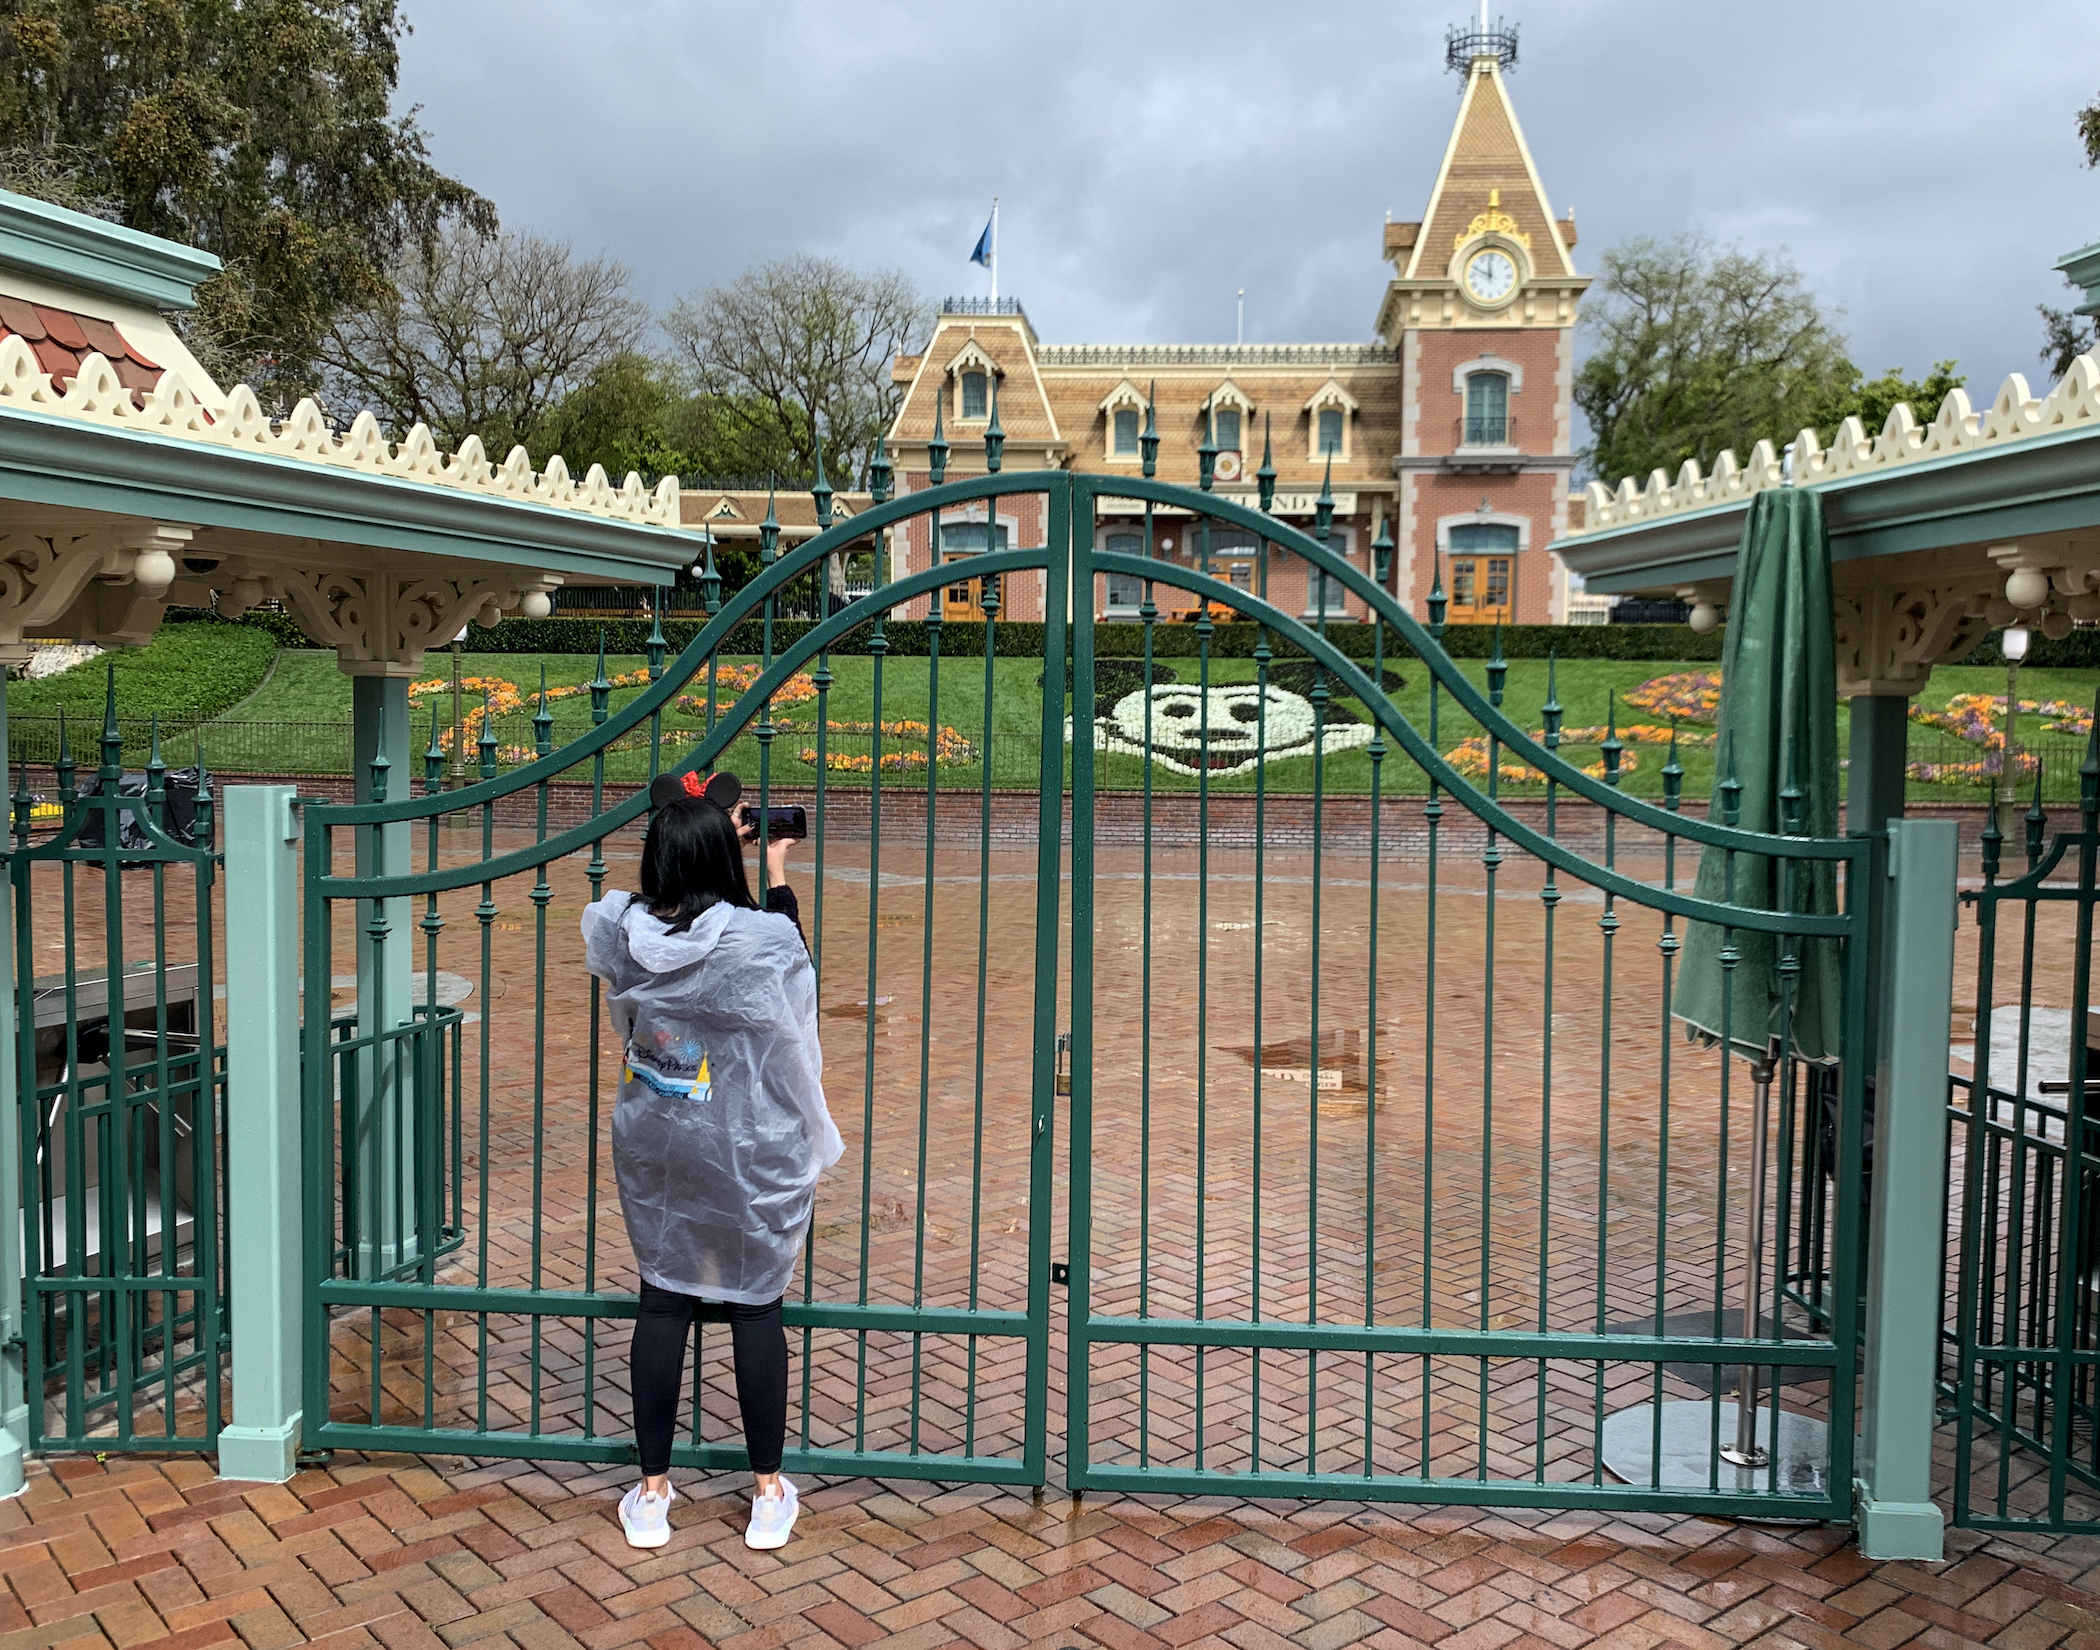 Disneyland closed in March as the coronavirus pandemic took hold in the United States and local governments issued lockdowns. (Getty Images)